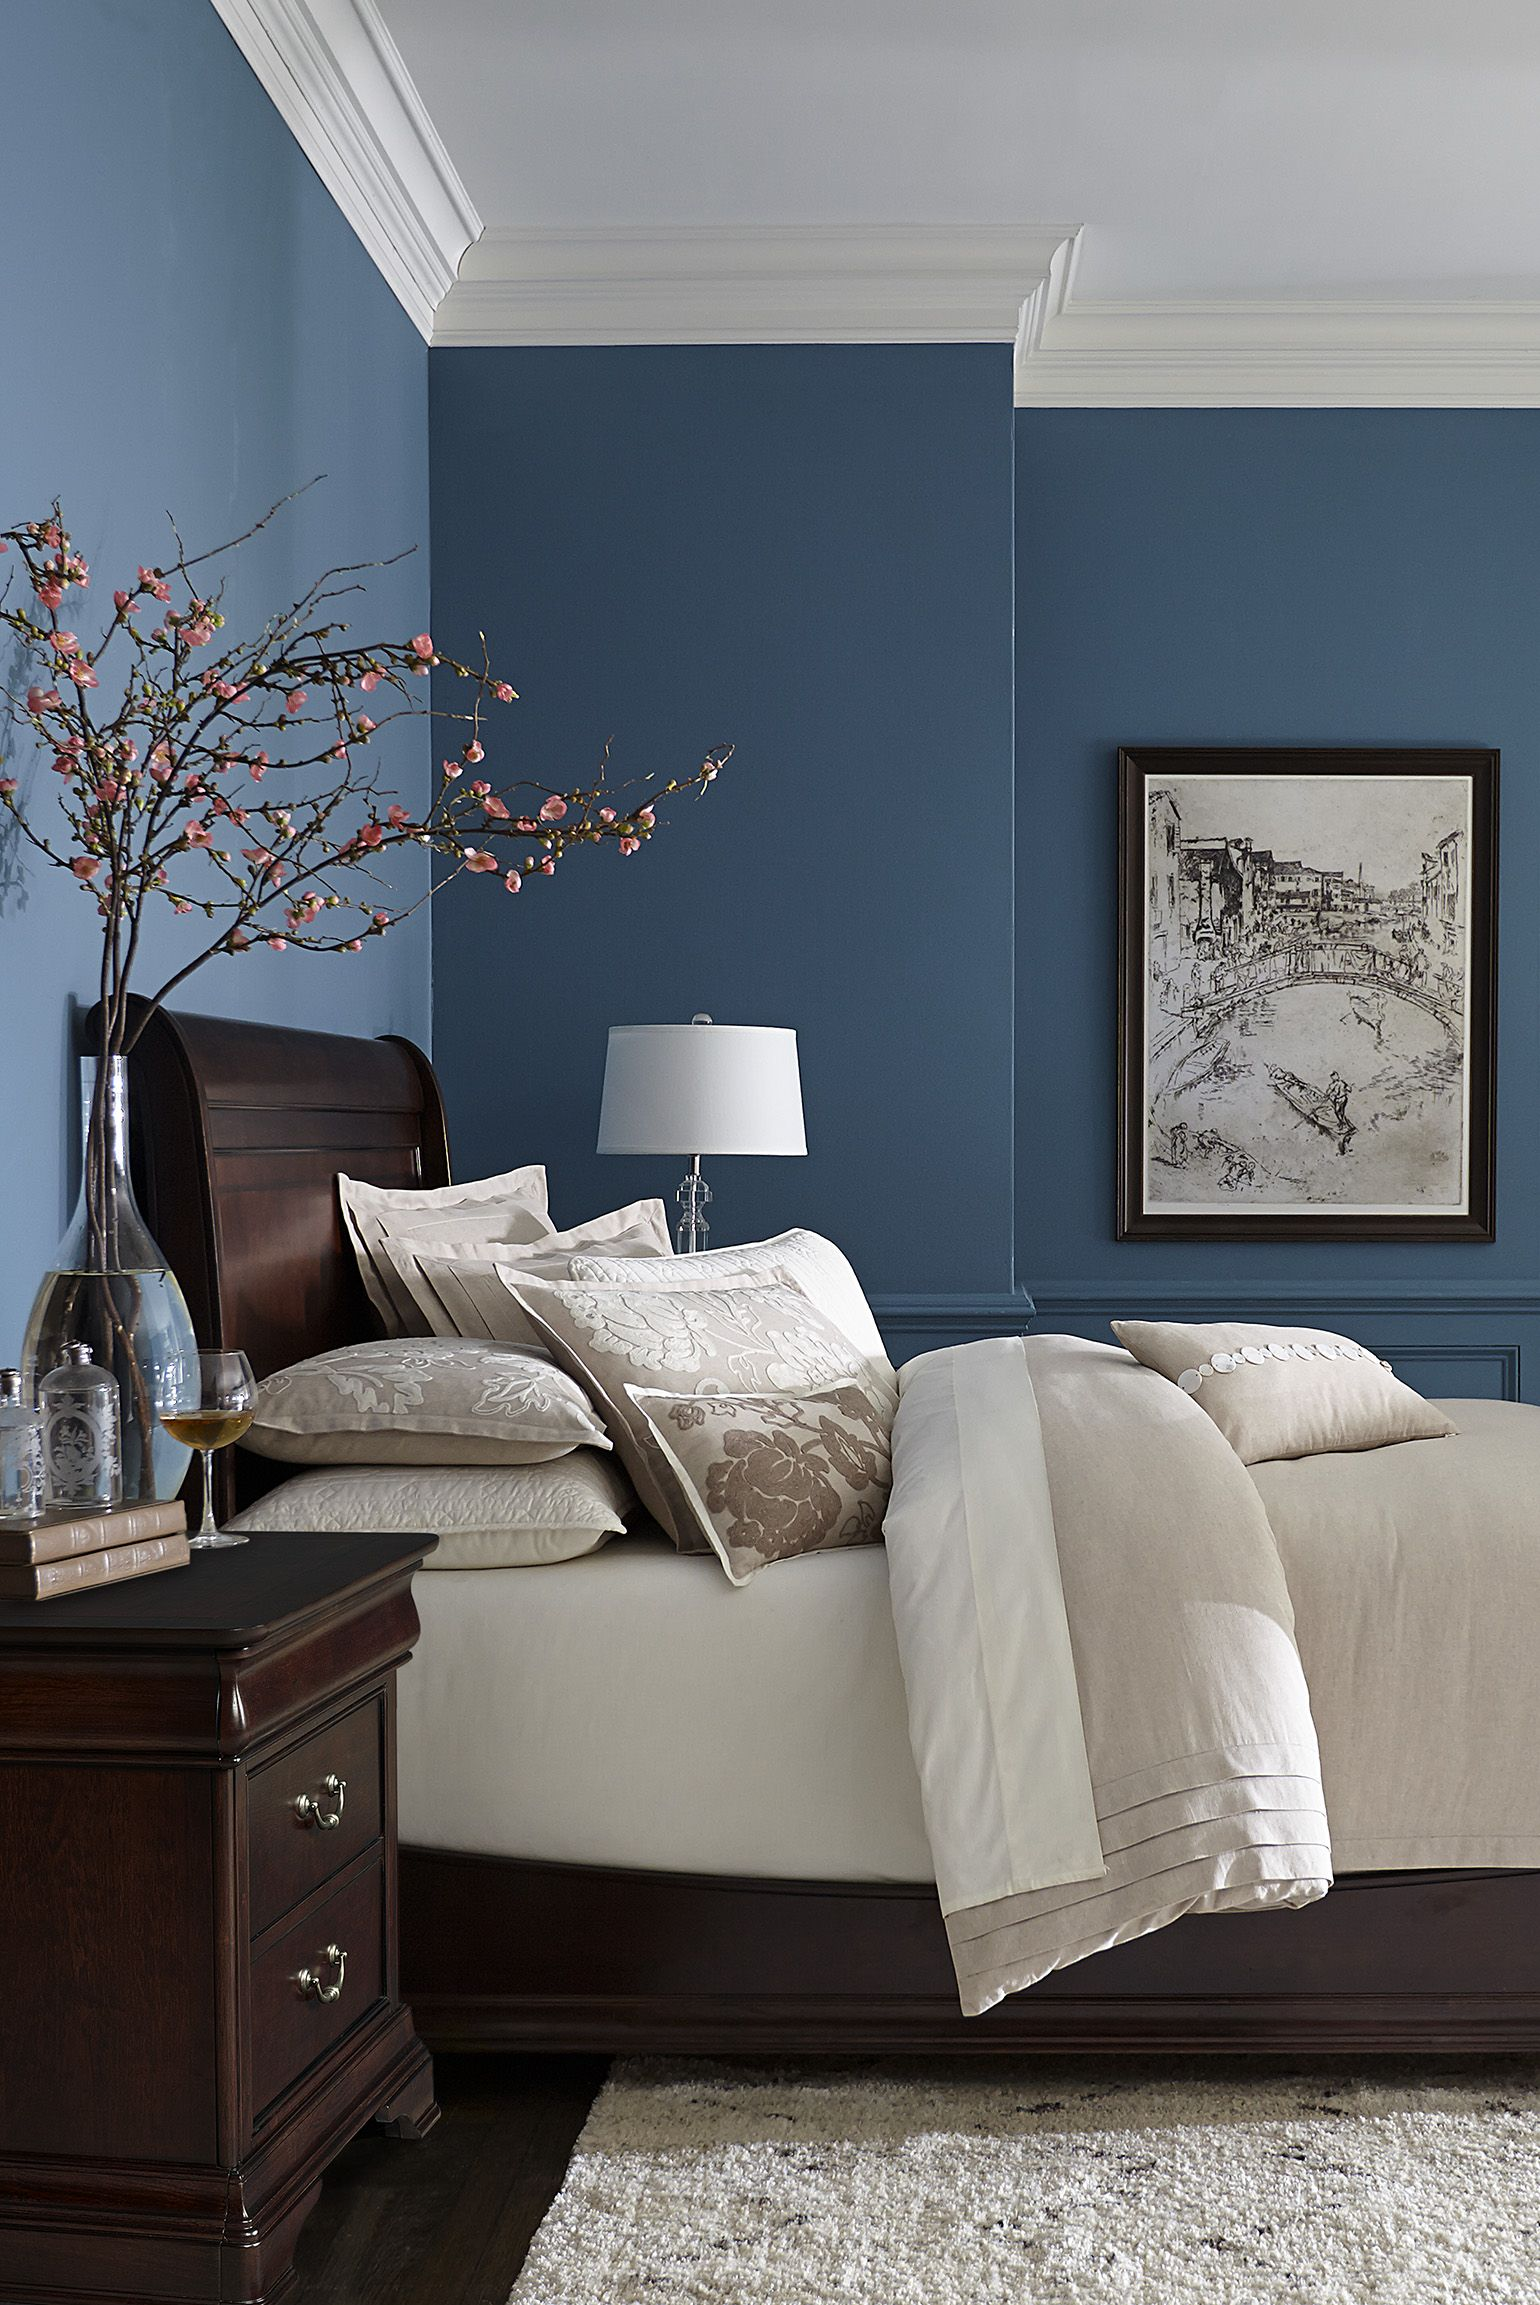 Bedroom paint ideas blue and brown - Made With Hardwood Solids With Cherry Veneers And Walnut Inlays Our Orleans Bedroom Collection Brings Blue Bedroom Wall Colorsmaster